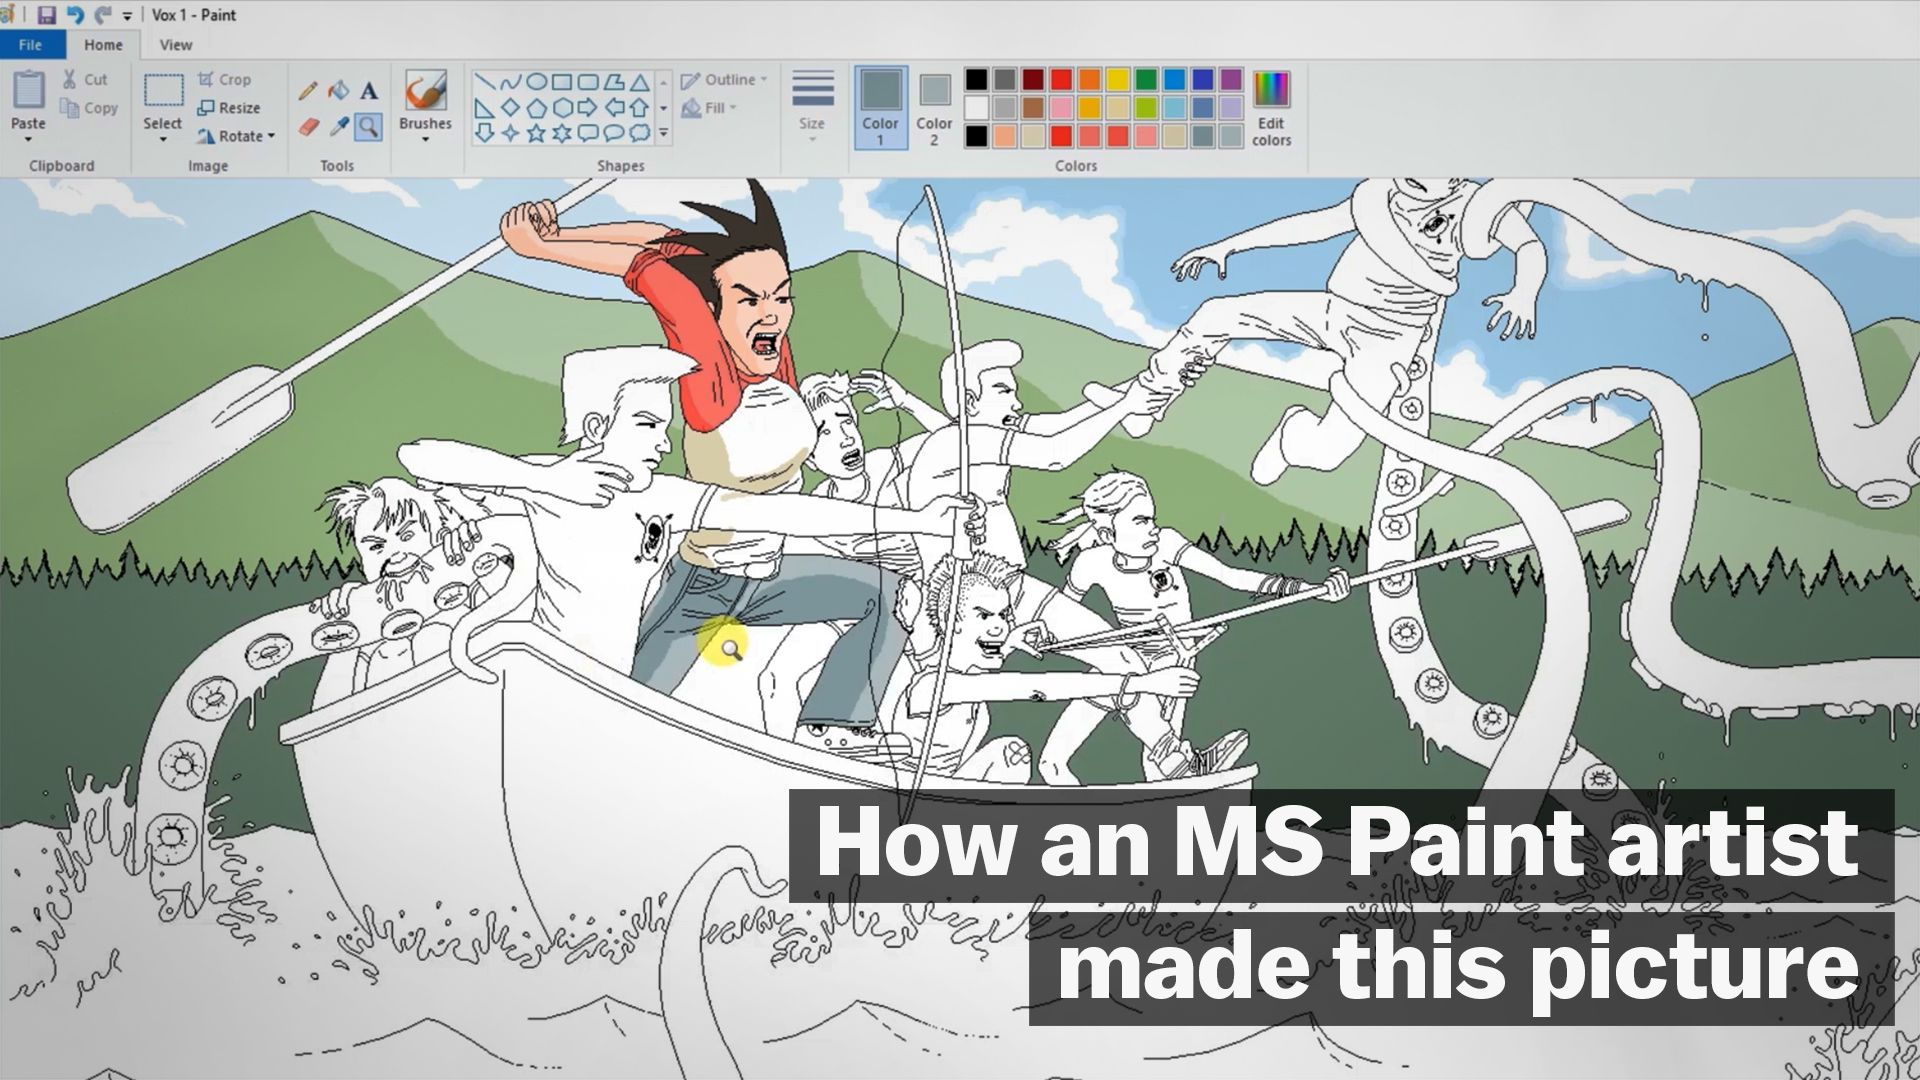 how an ms paint artist made this picture vox